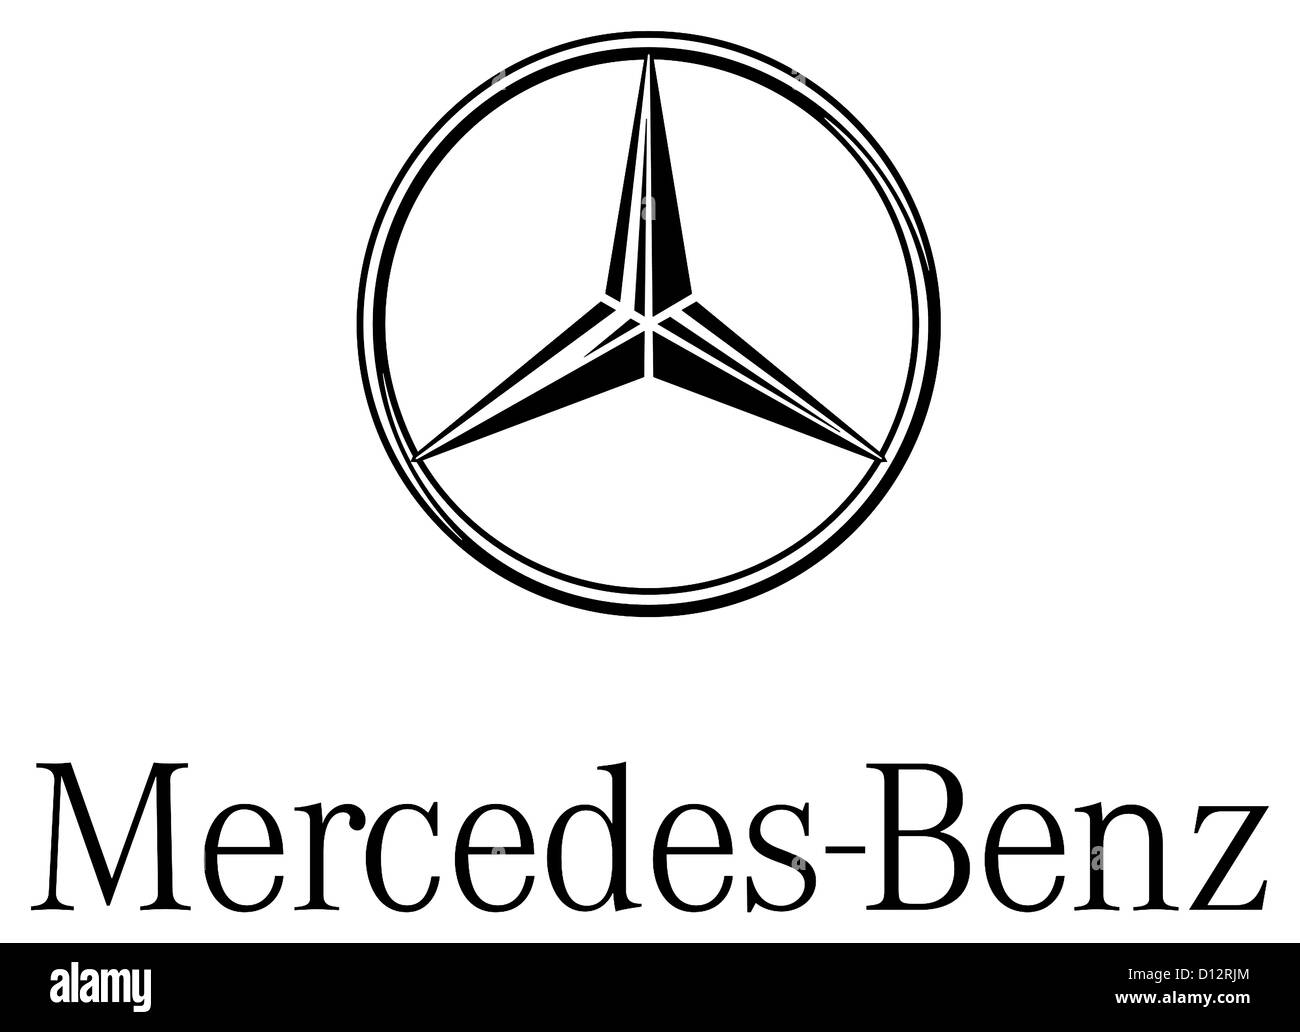 Logo of the make of car mercedes benz of the german for Mercedes benz text